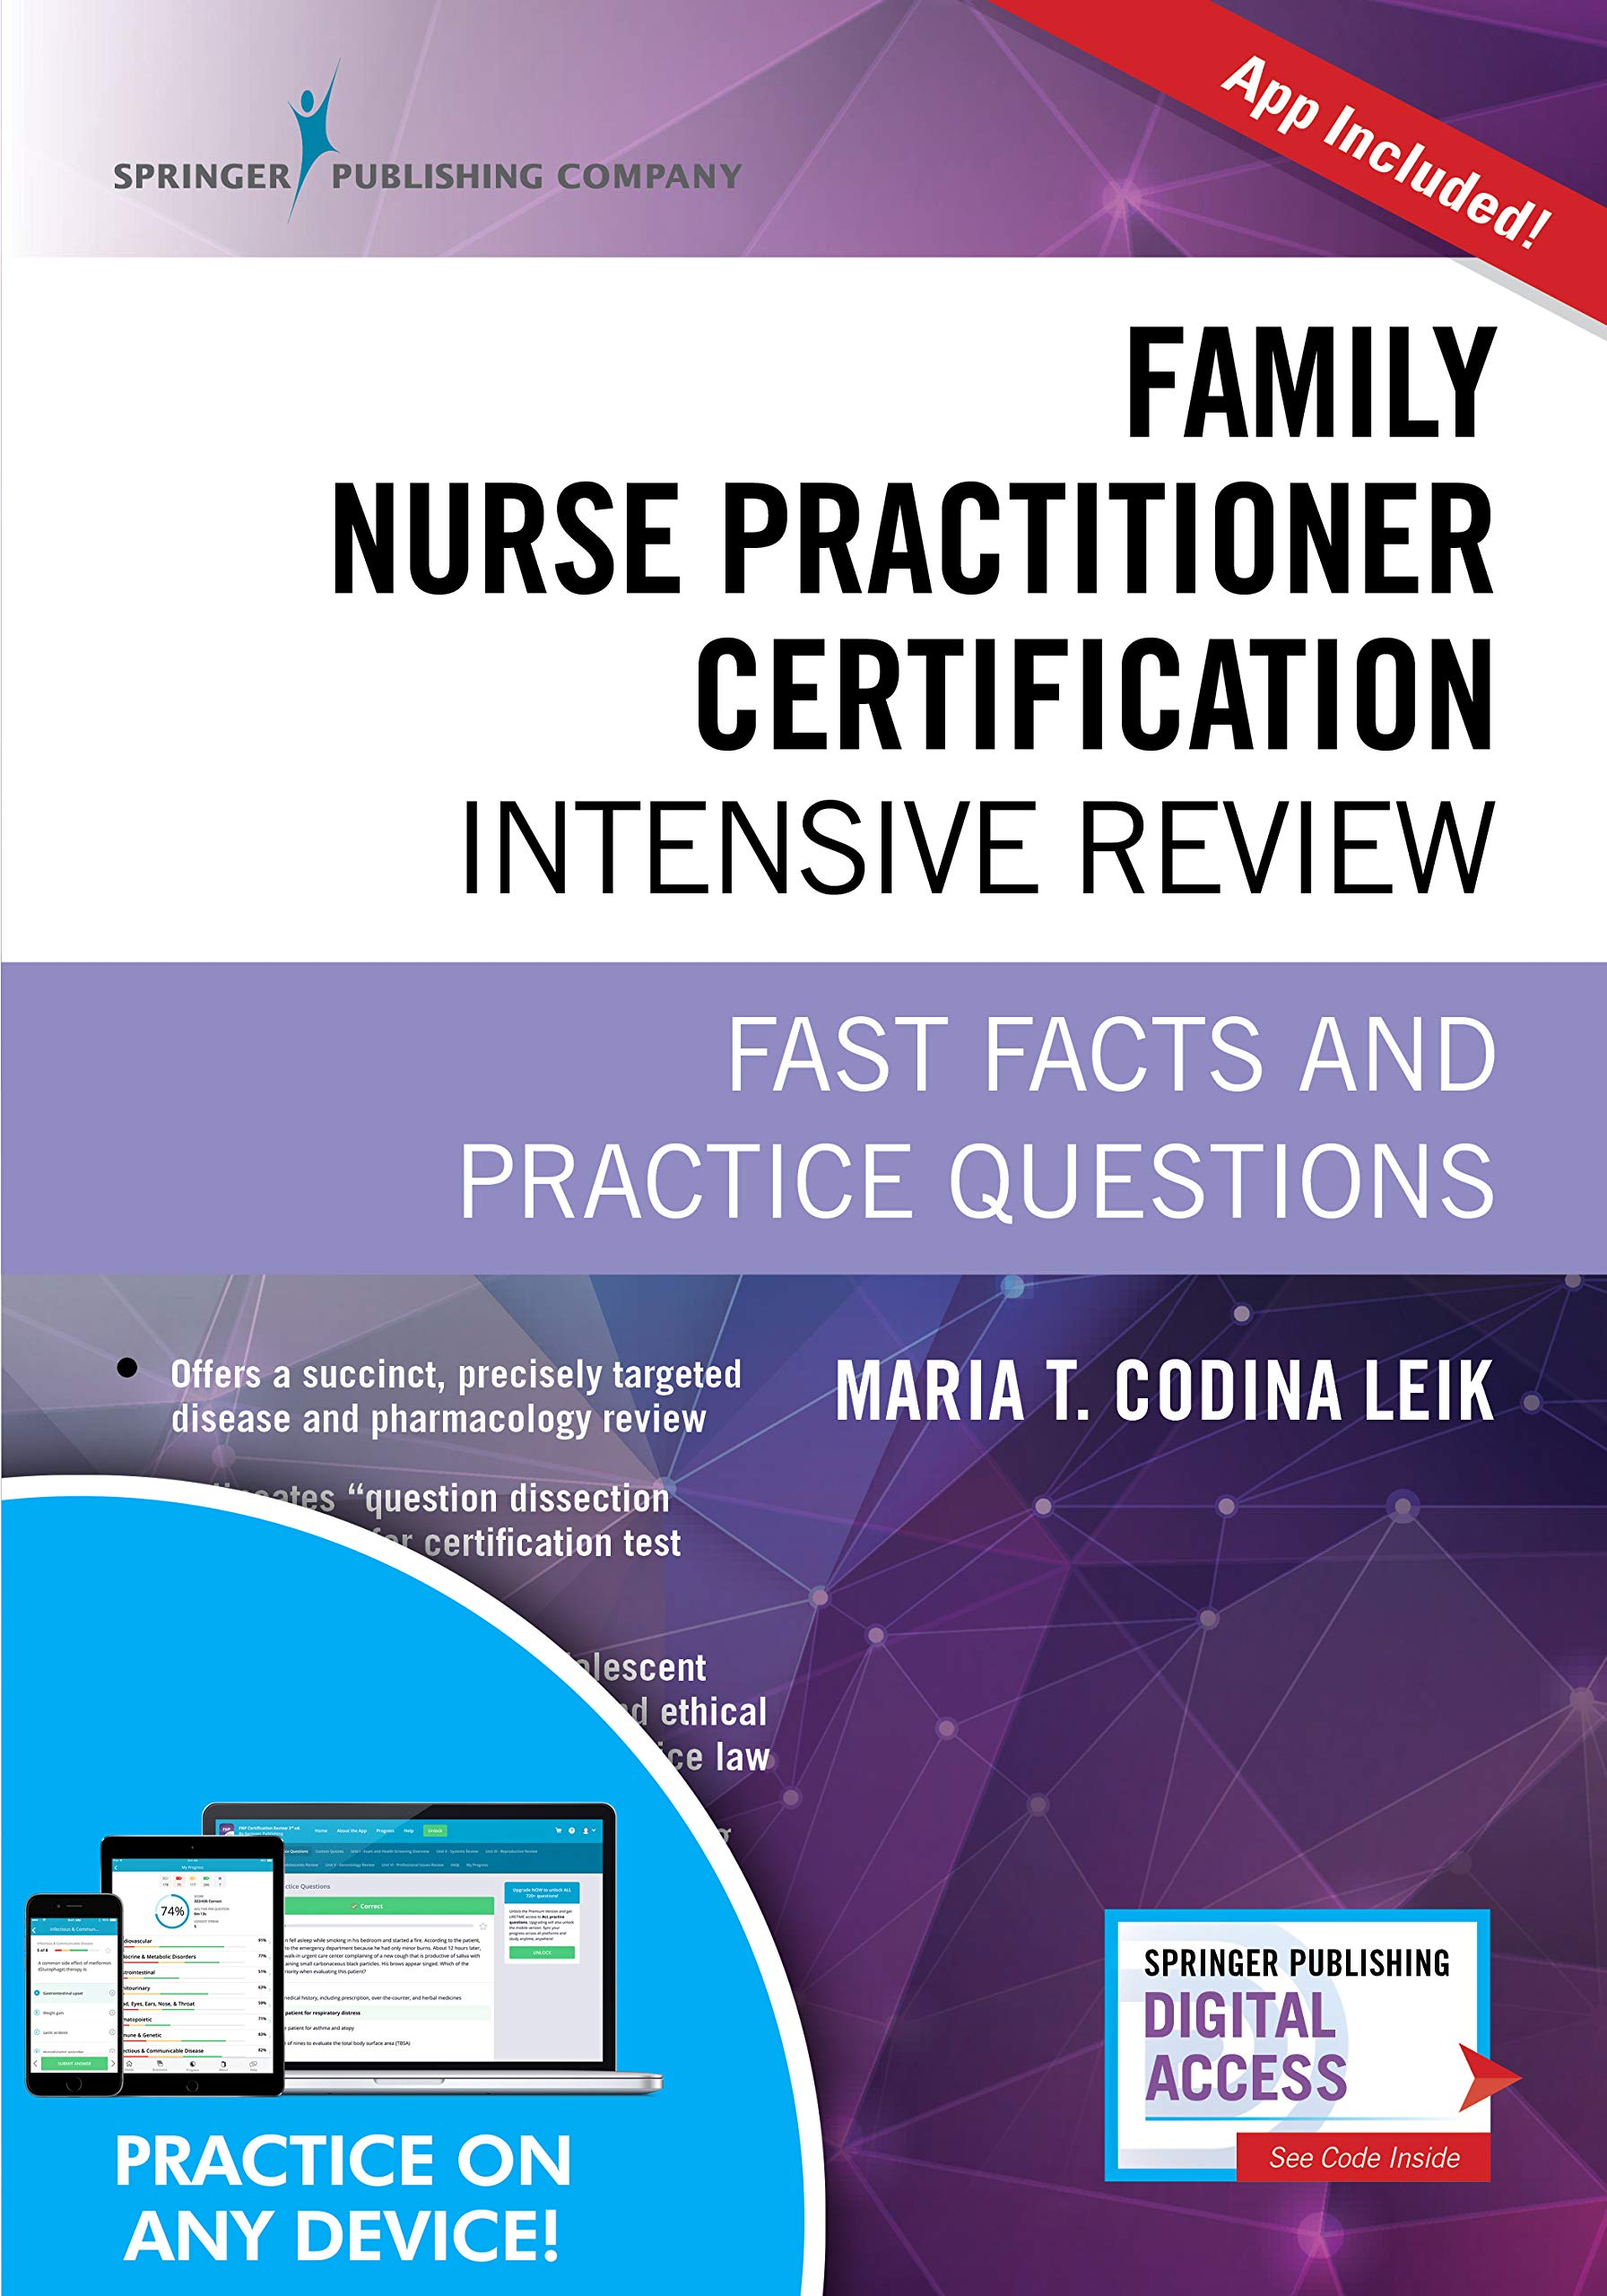 Family Nurse Practitioner Certification Intensive Review, Third Edition: Fast Facts and Practice Questions - Book and Free App - Highly Rated FNP Exam Review Book by Springer Publishing Companyy